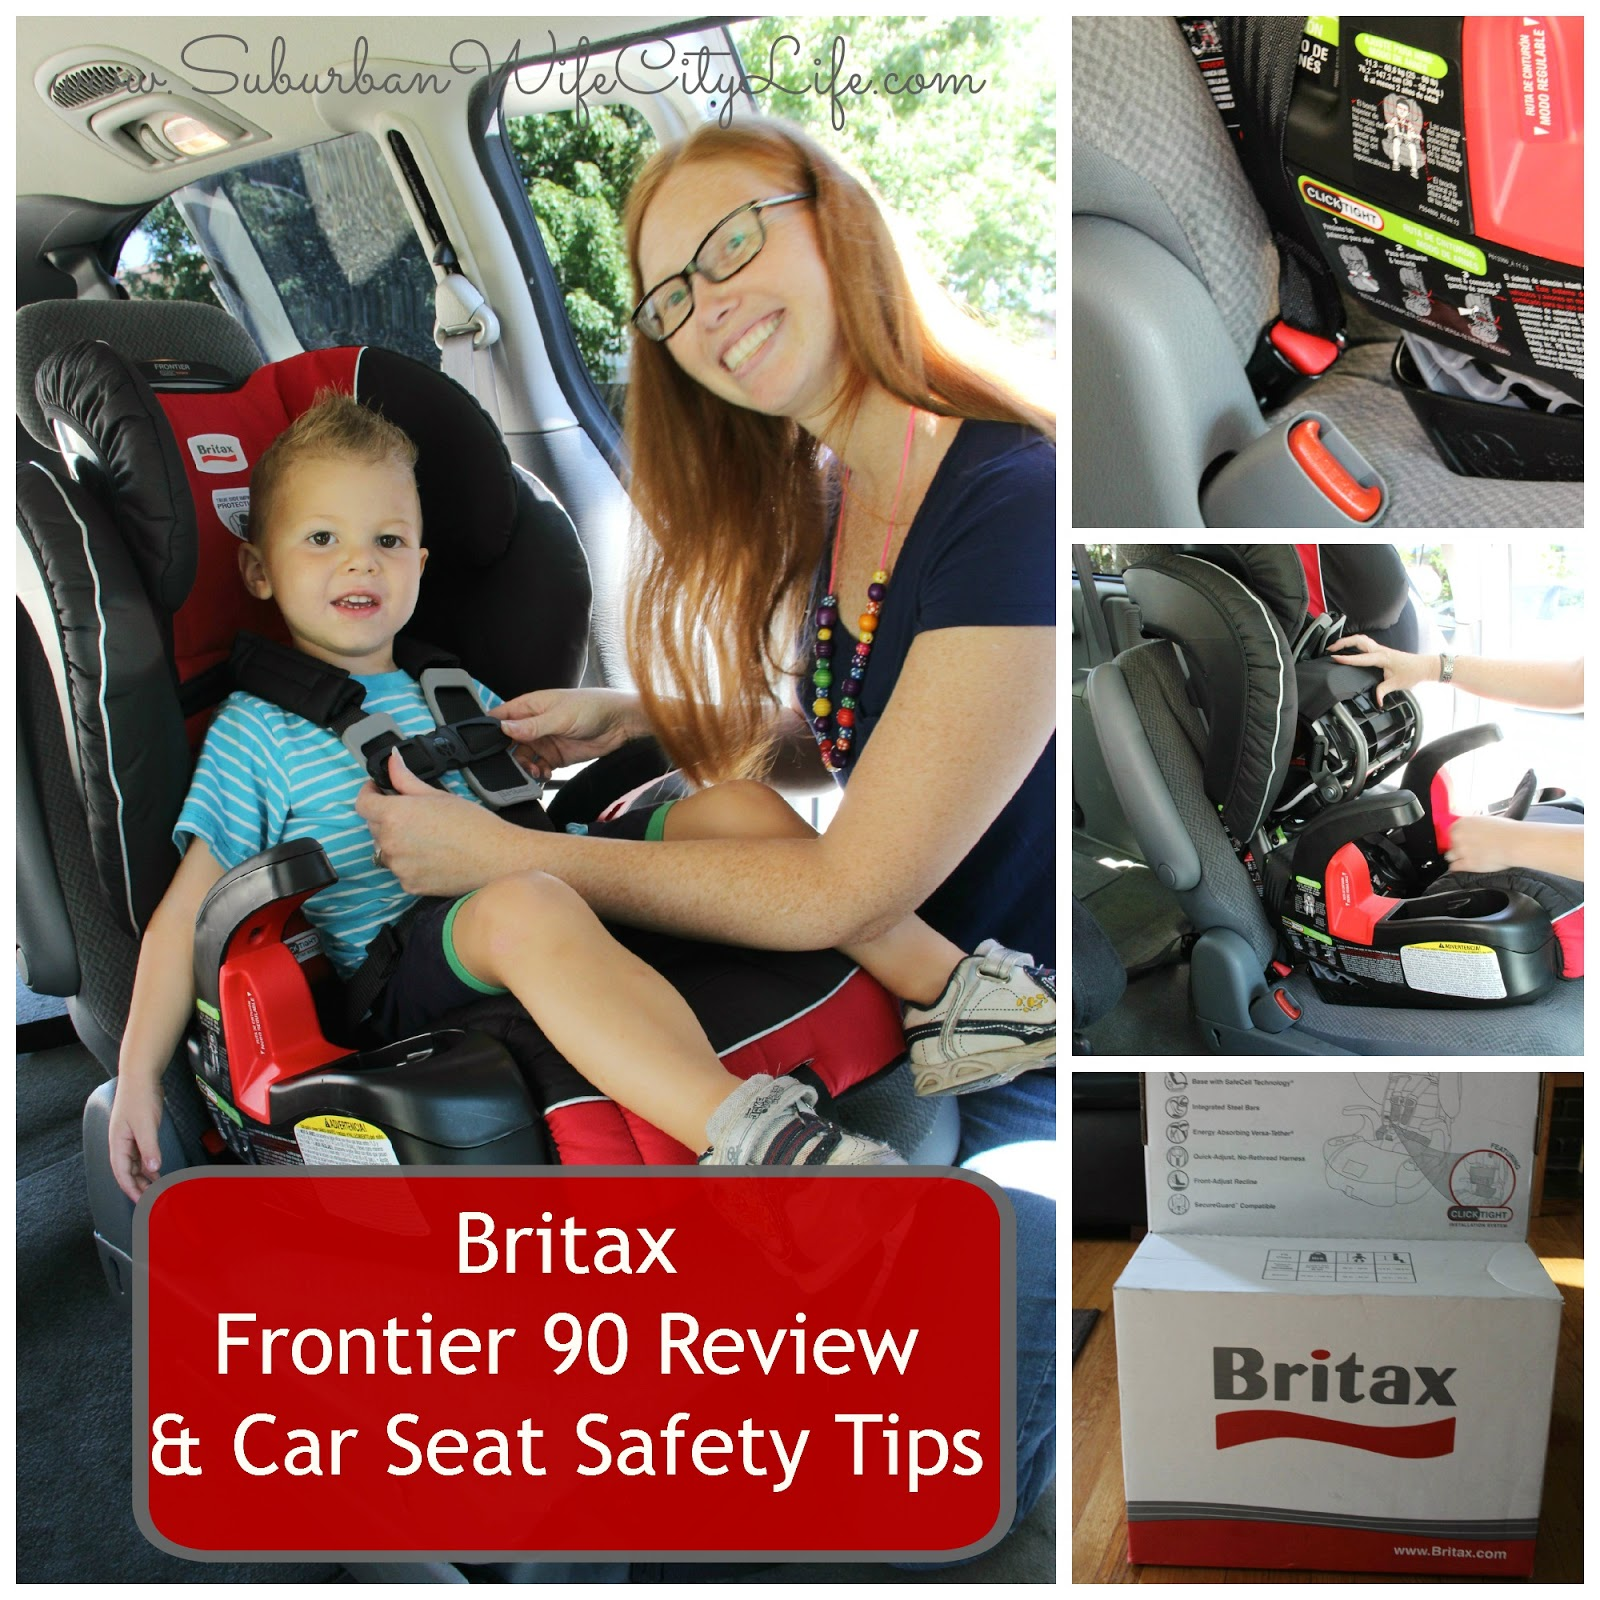 Car Seat Safety Info & Britax Frontier 90 Review - Suburban Wife ...